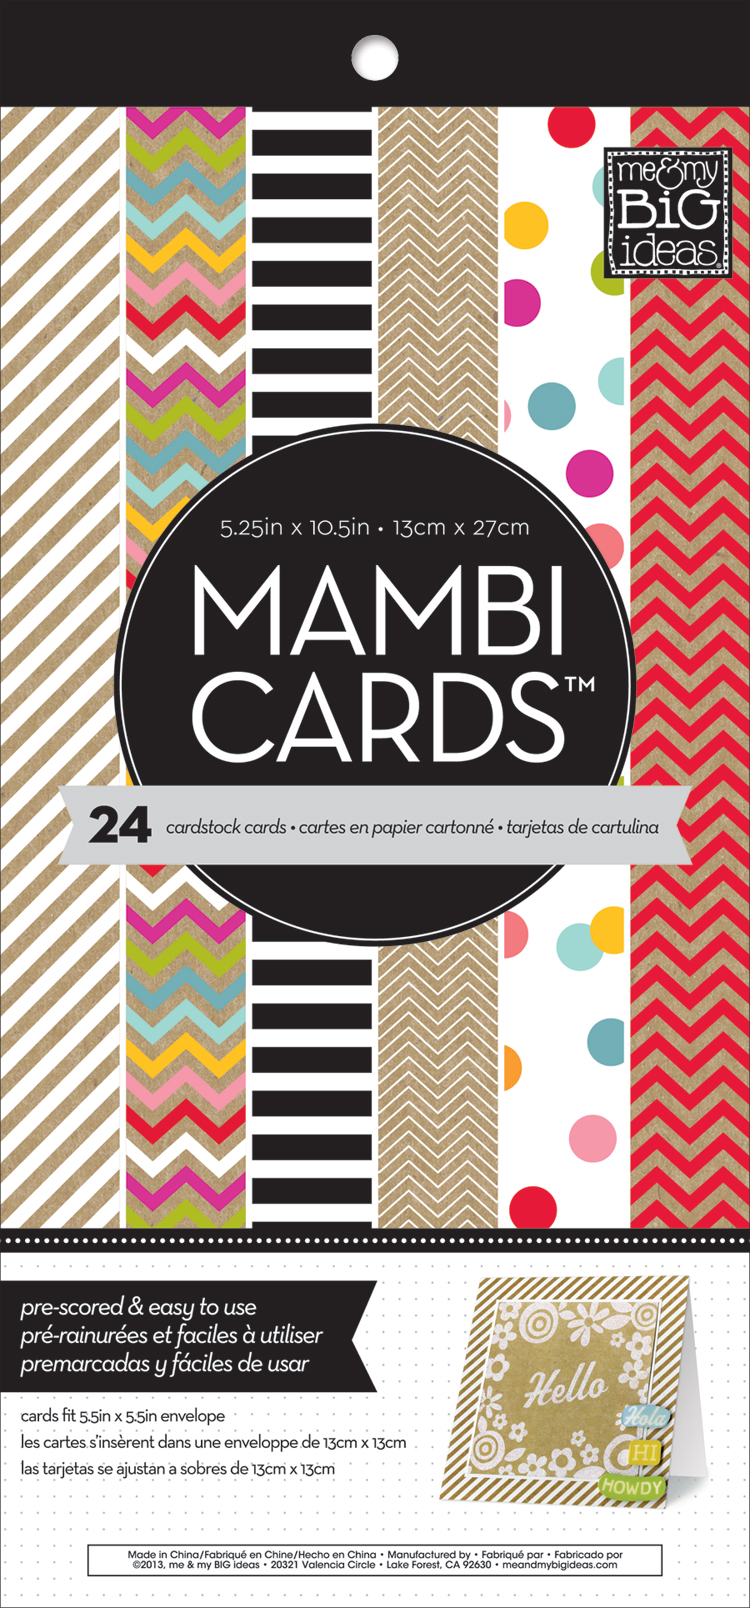 mambi:  Cards in an INSTANT cardstock pre-scored pad. CPP-503